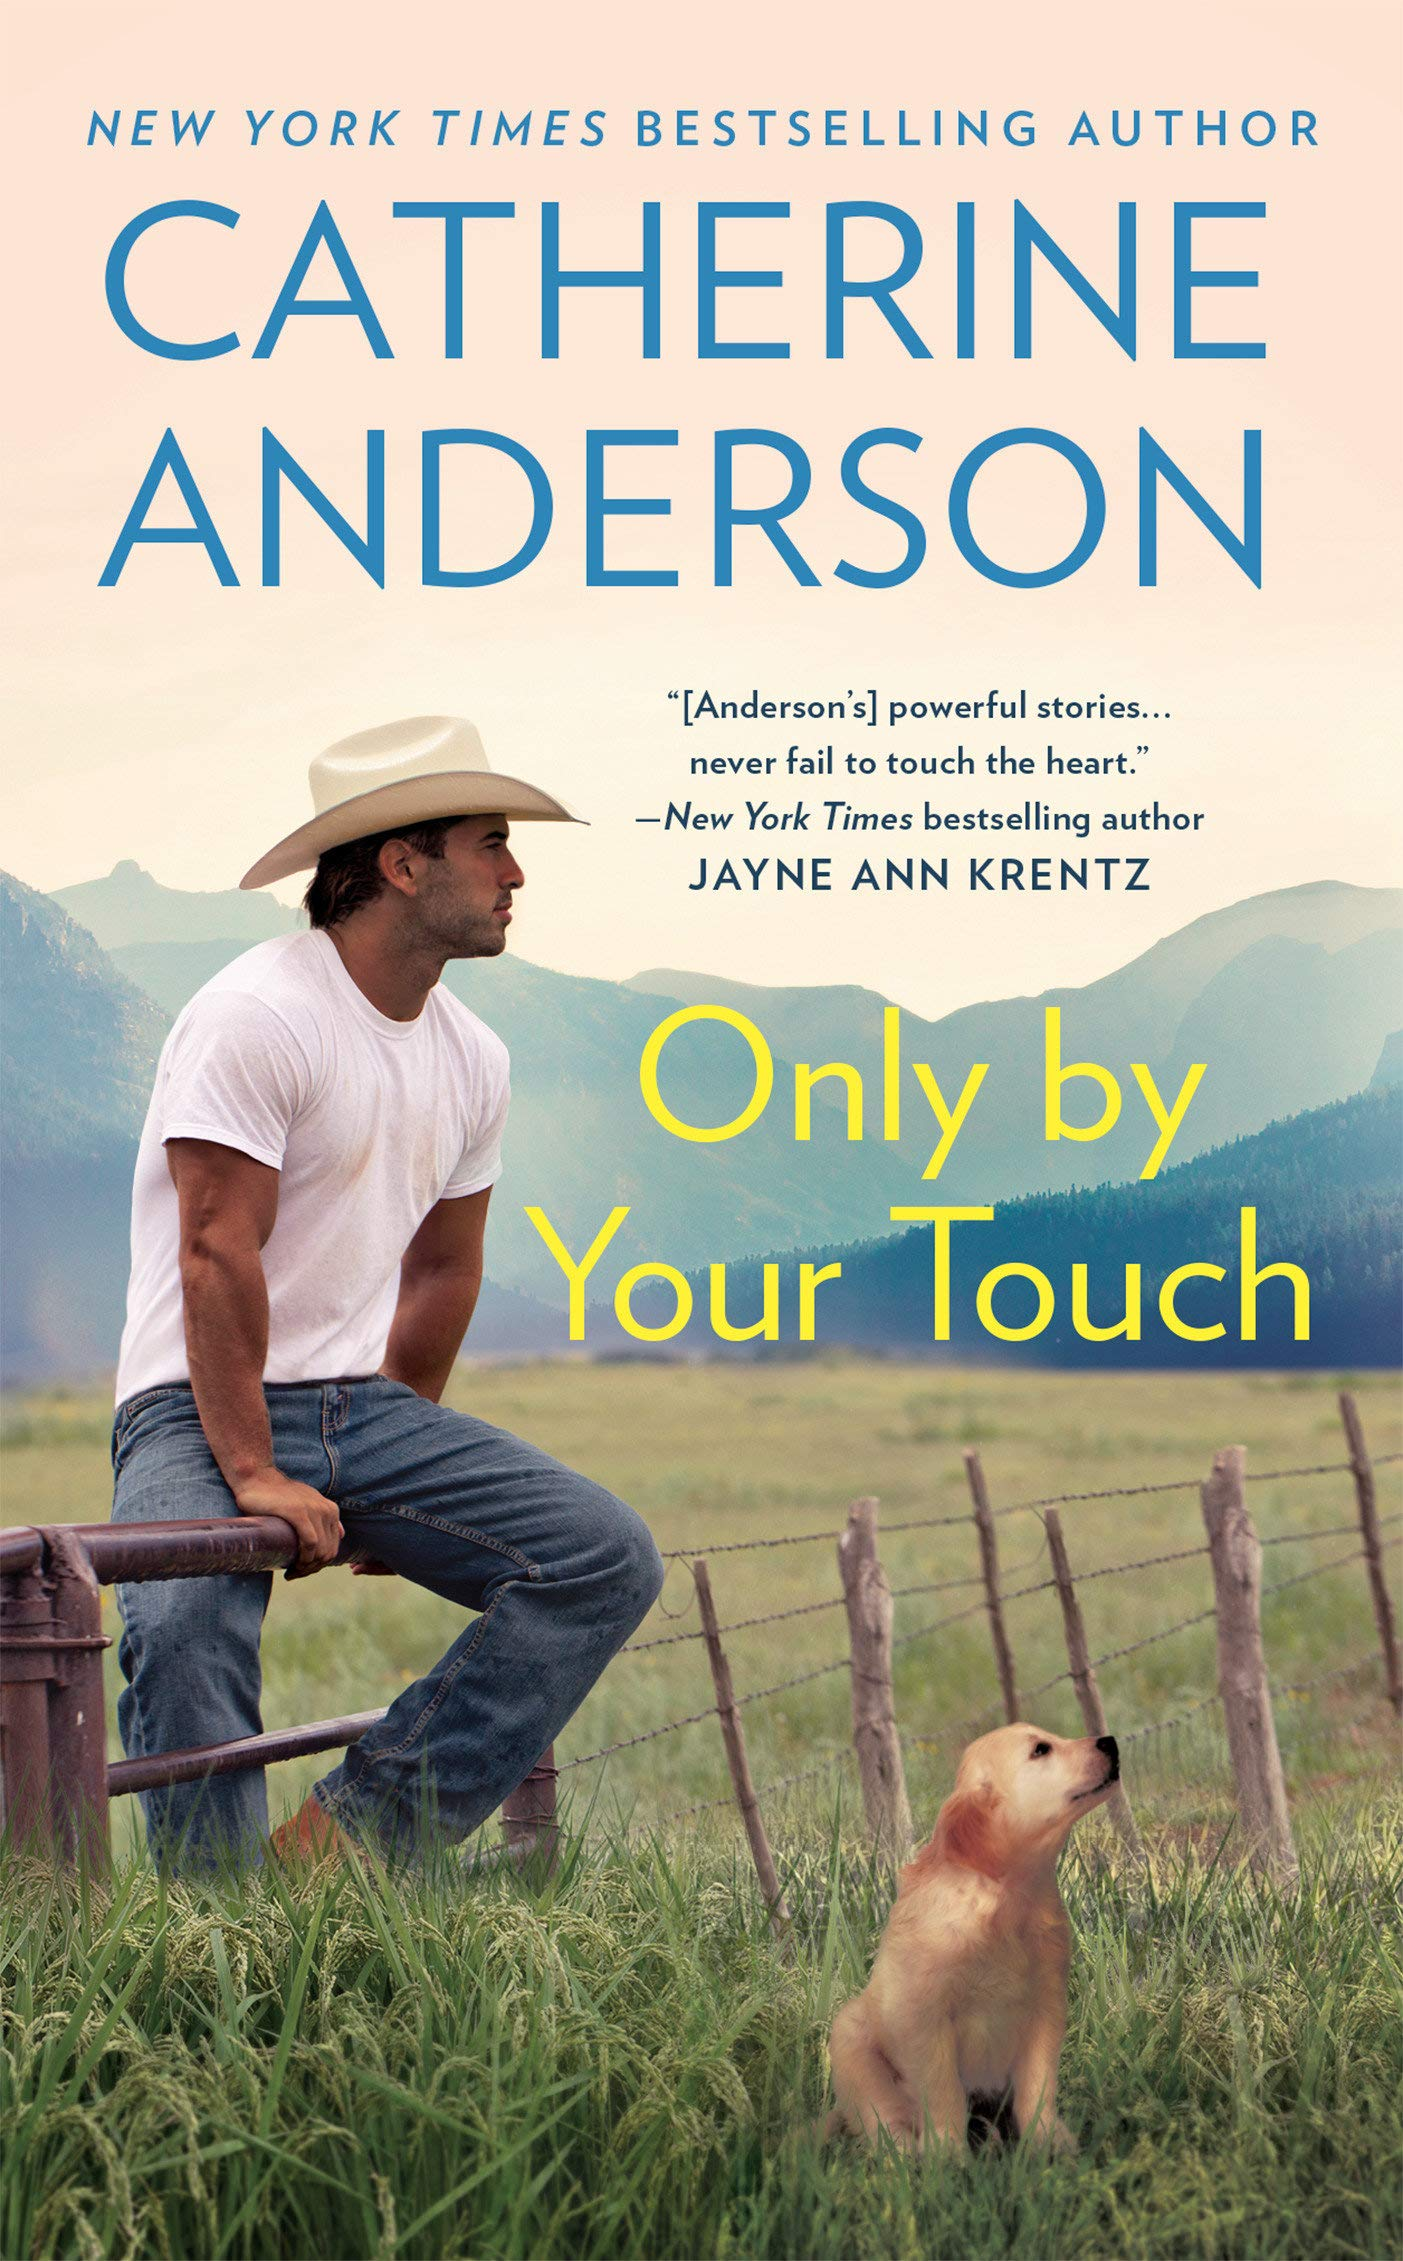 Only by Your Touch